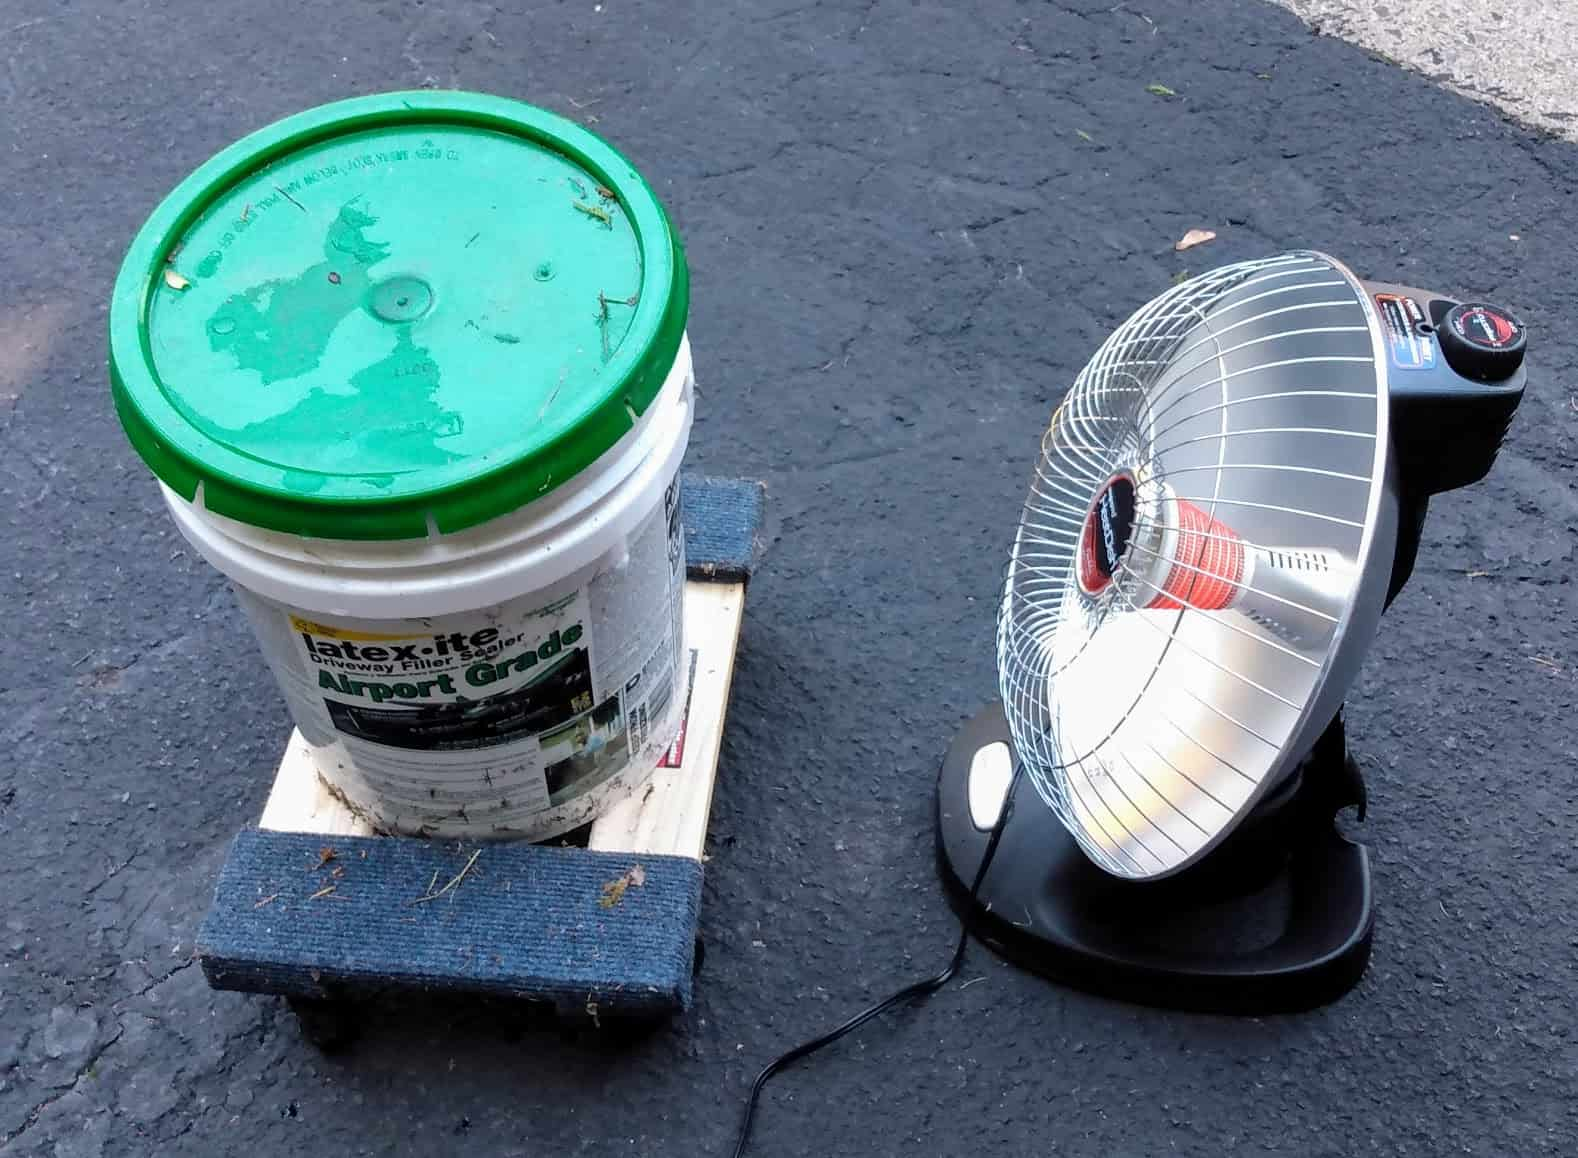 Heating driveway sealer with an infrared heater.